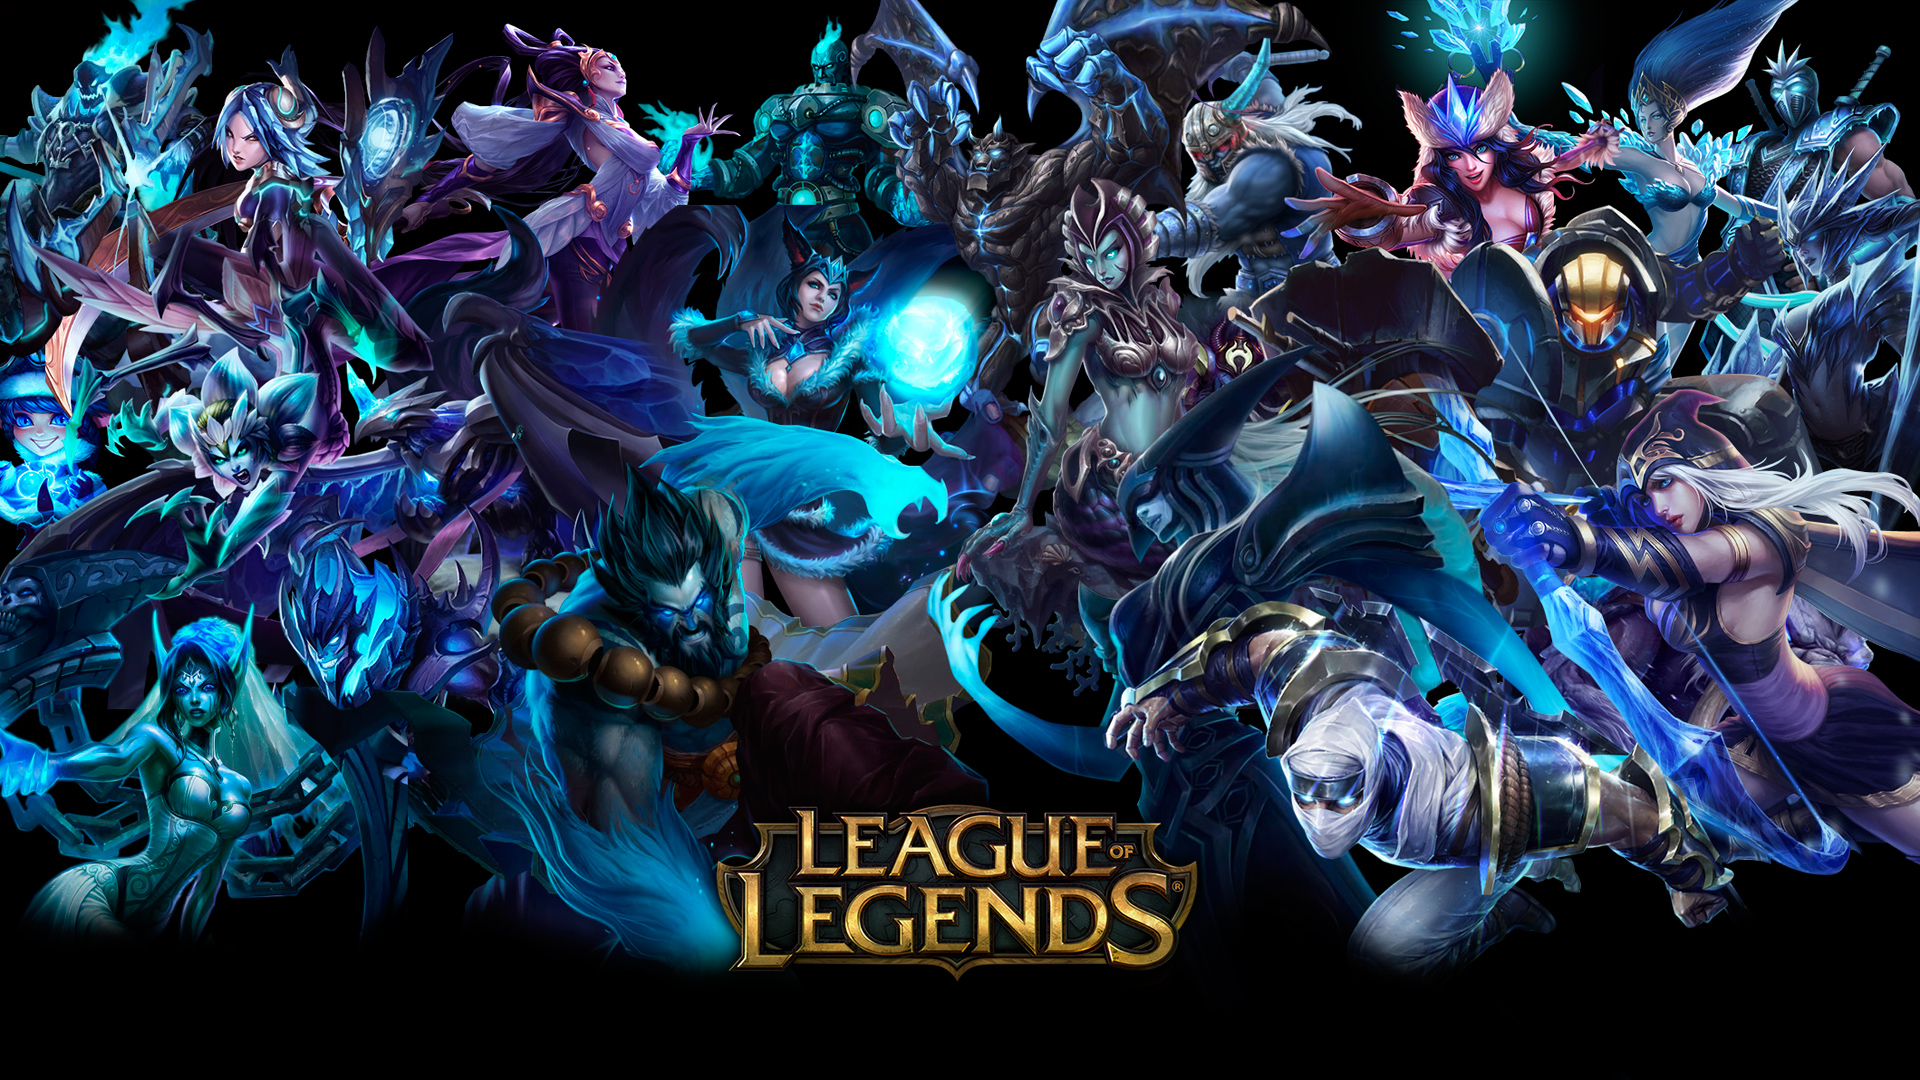 League of Legends Wallpapers 1920x1080 - WallpaperSafari